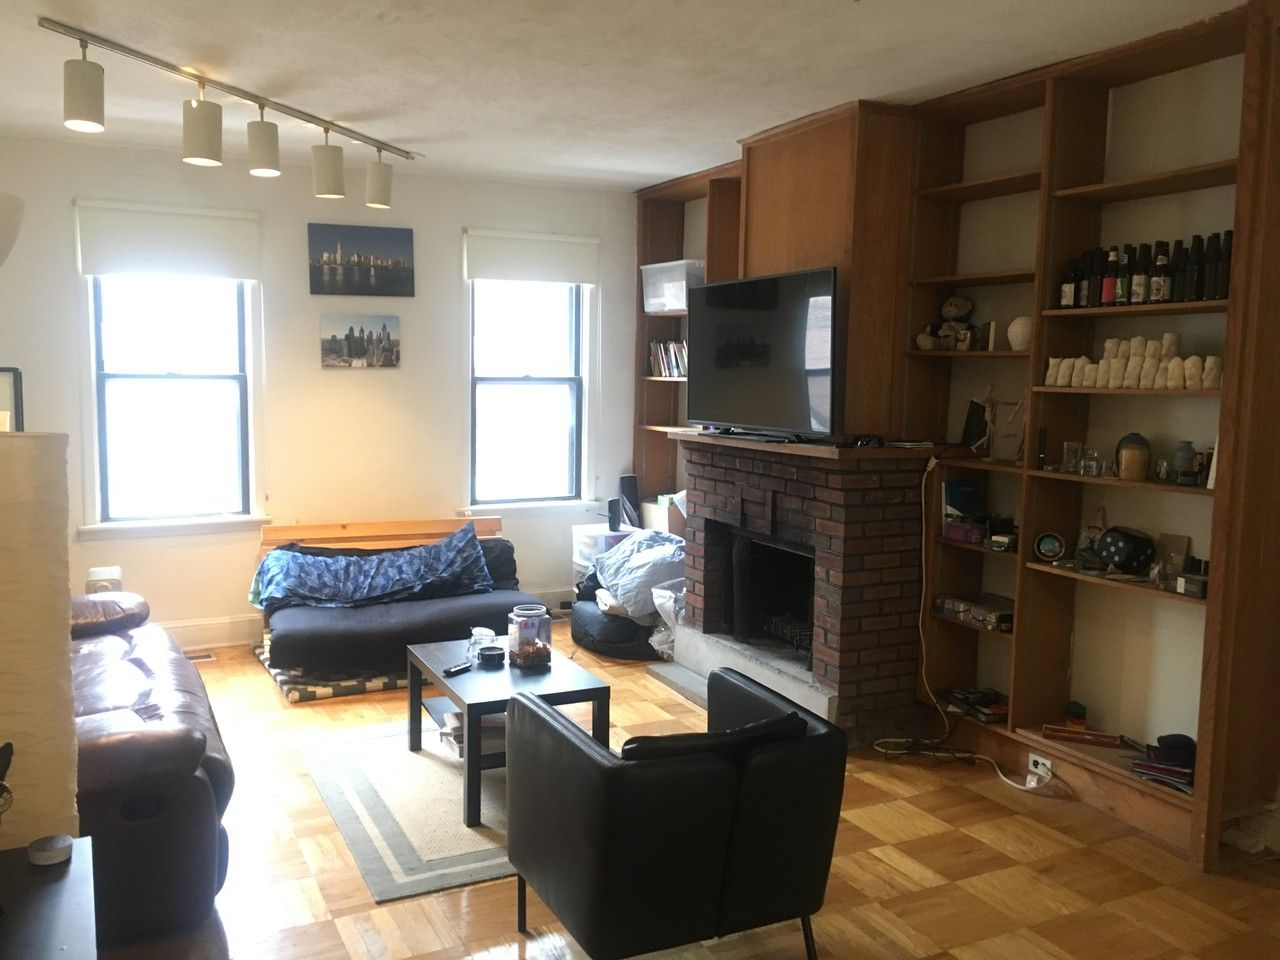 419 South 17th Street #2, Philadelphia, PA 19146 2 Bedroom